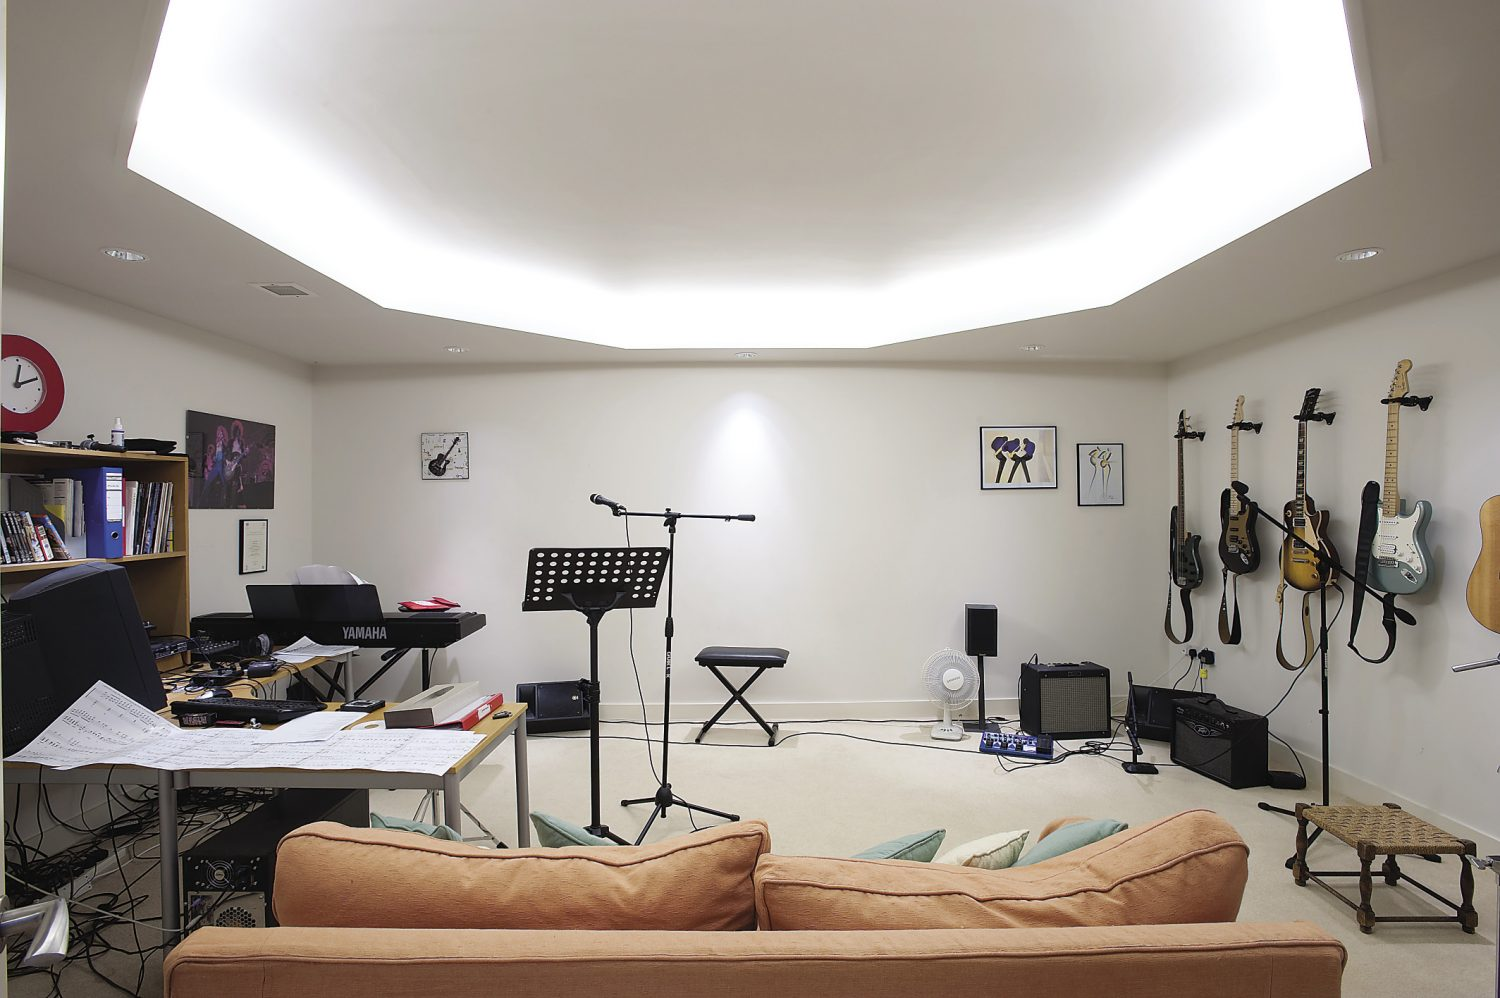 The music room is used as a home cinema, but its main function is as a rehearsal and recording studio for Tim to play guitar and for the couple's ten year old son to practise his jazz piano